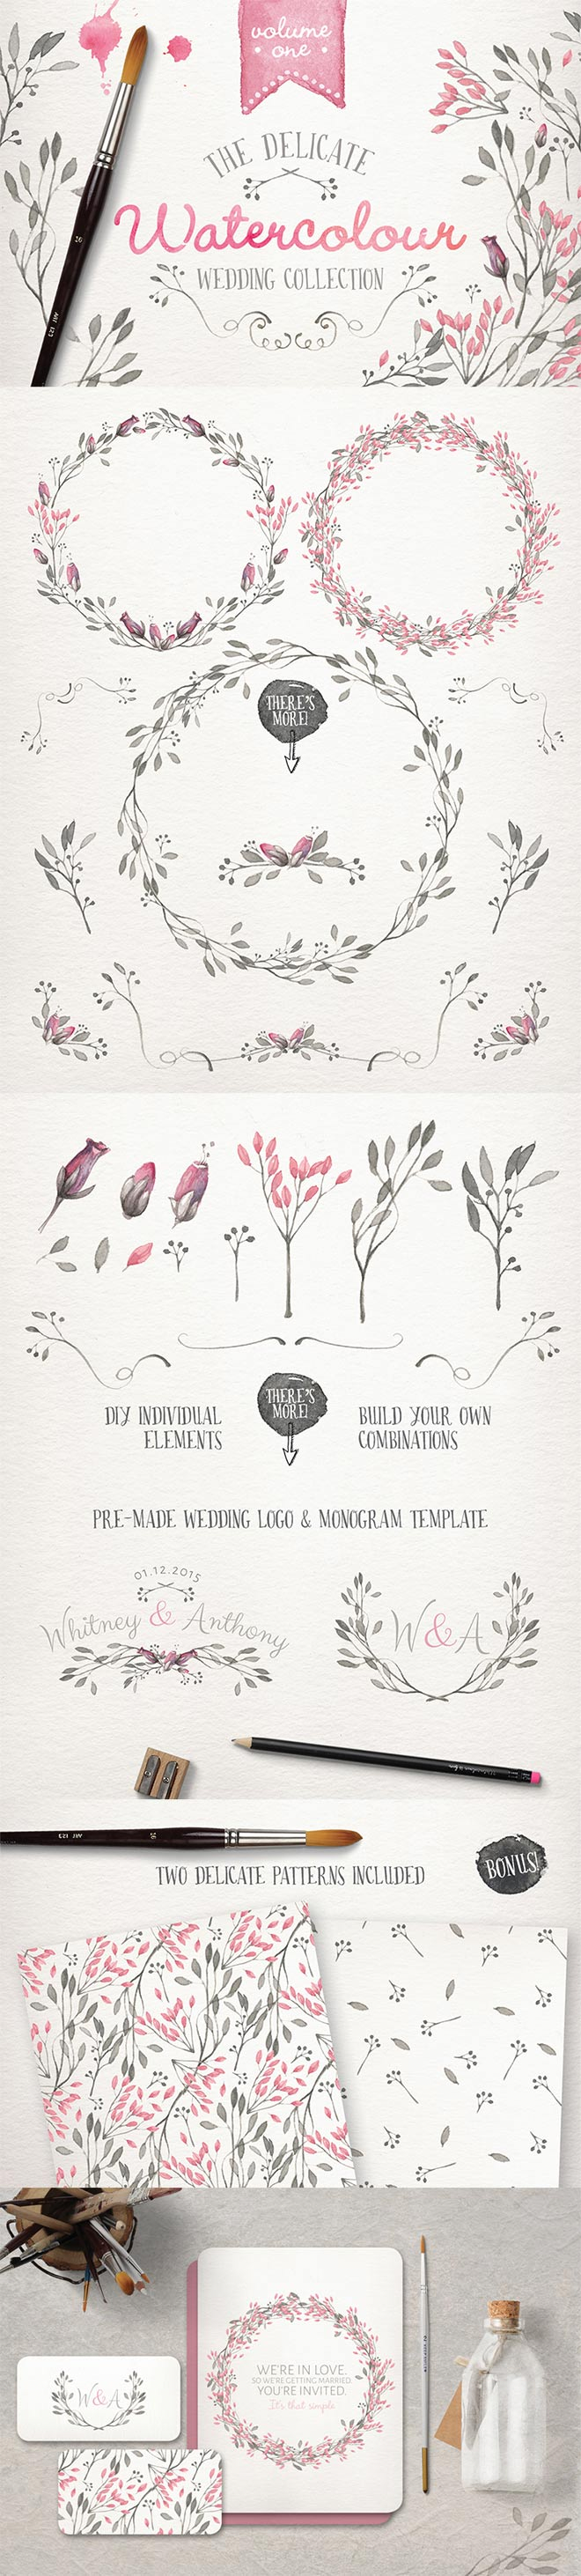 Watercolor Wedding Collection